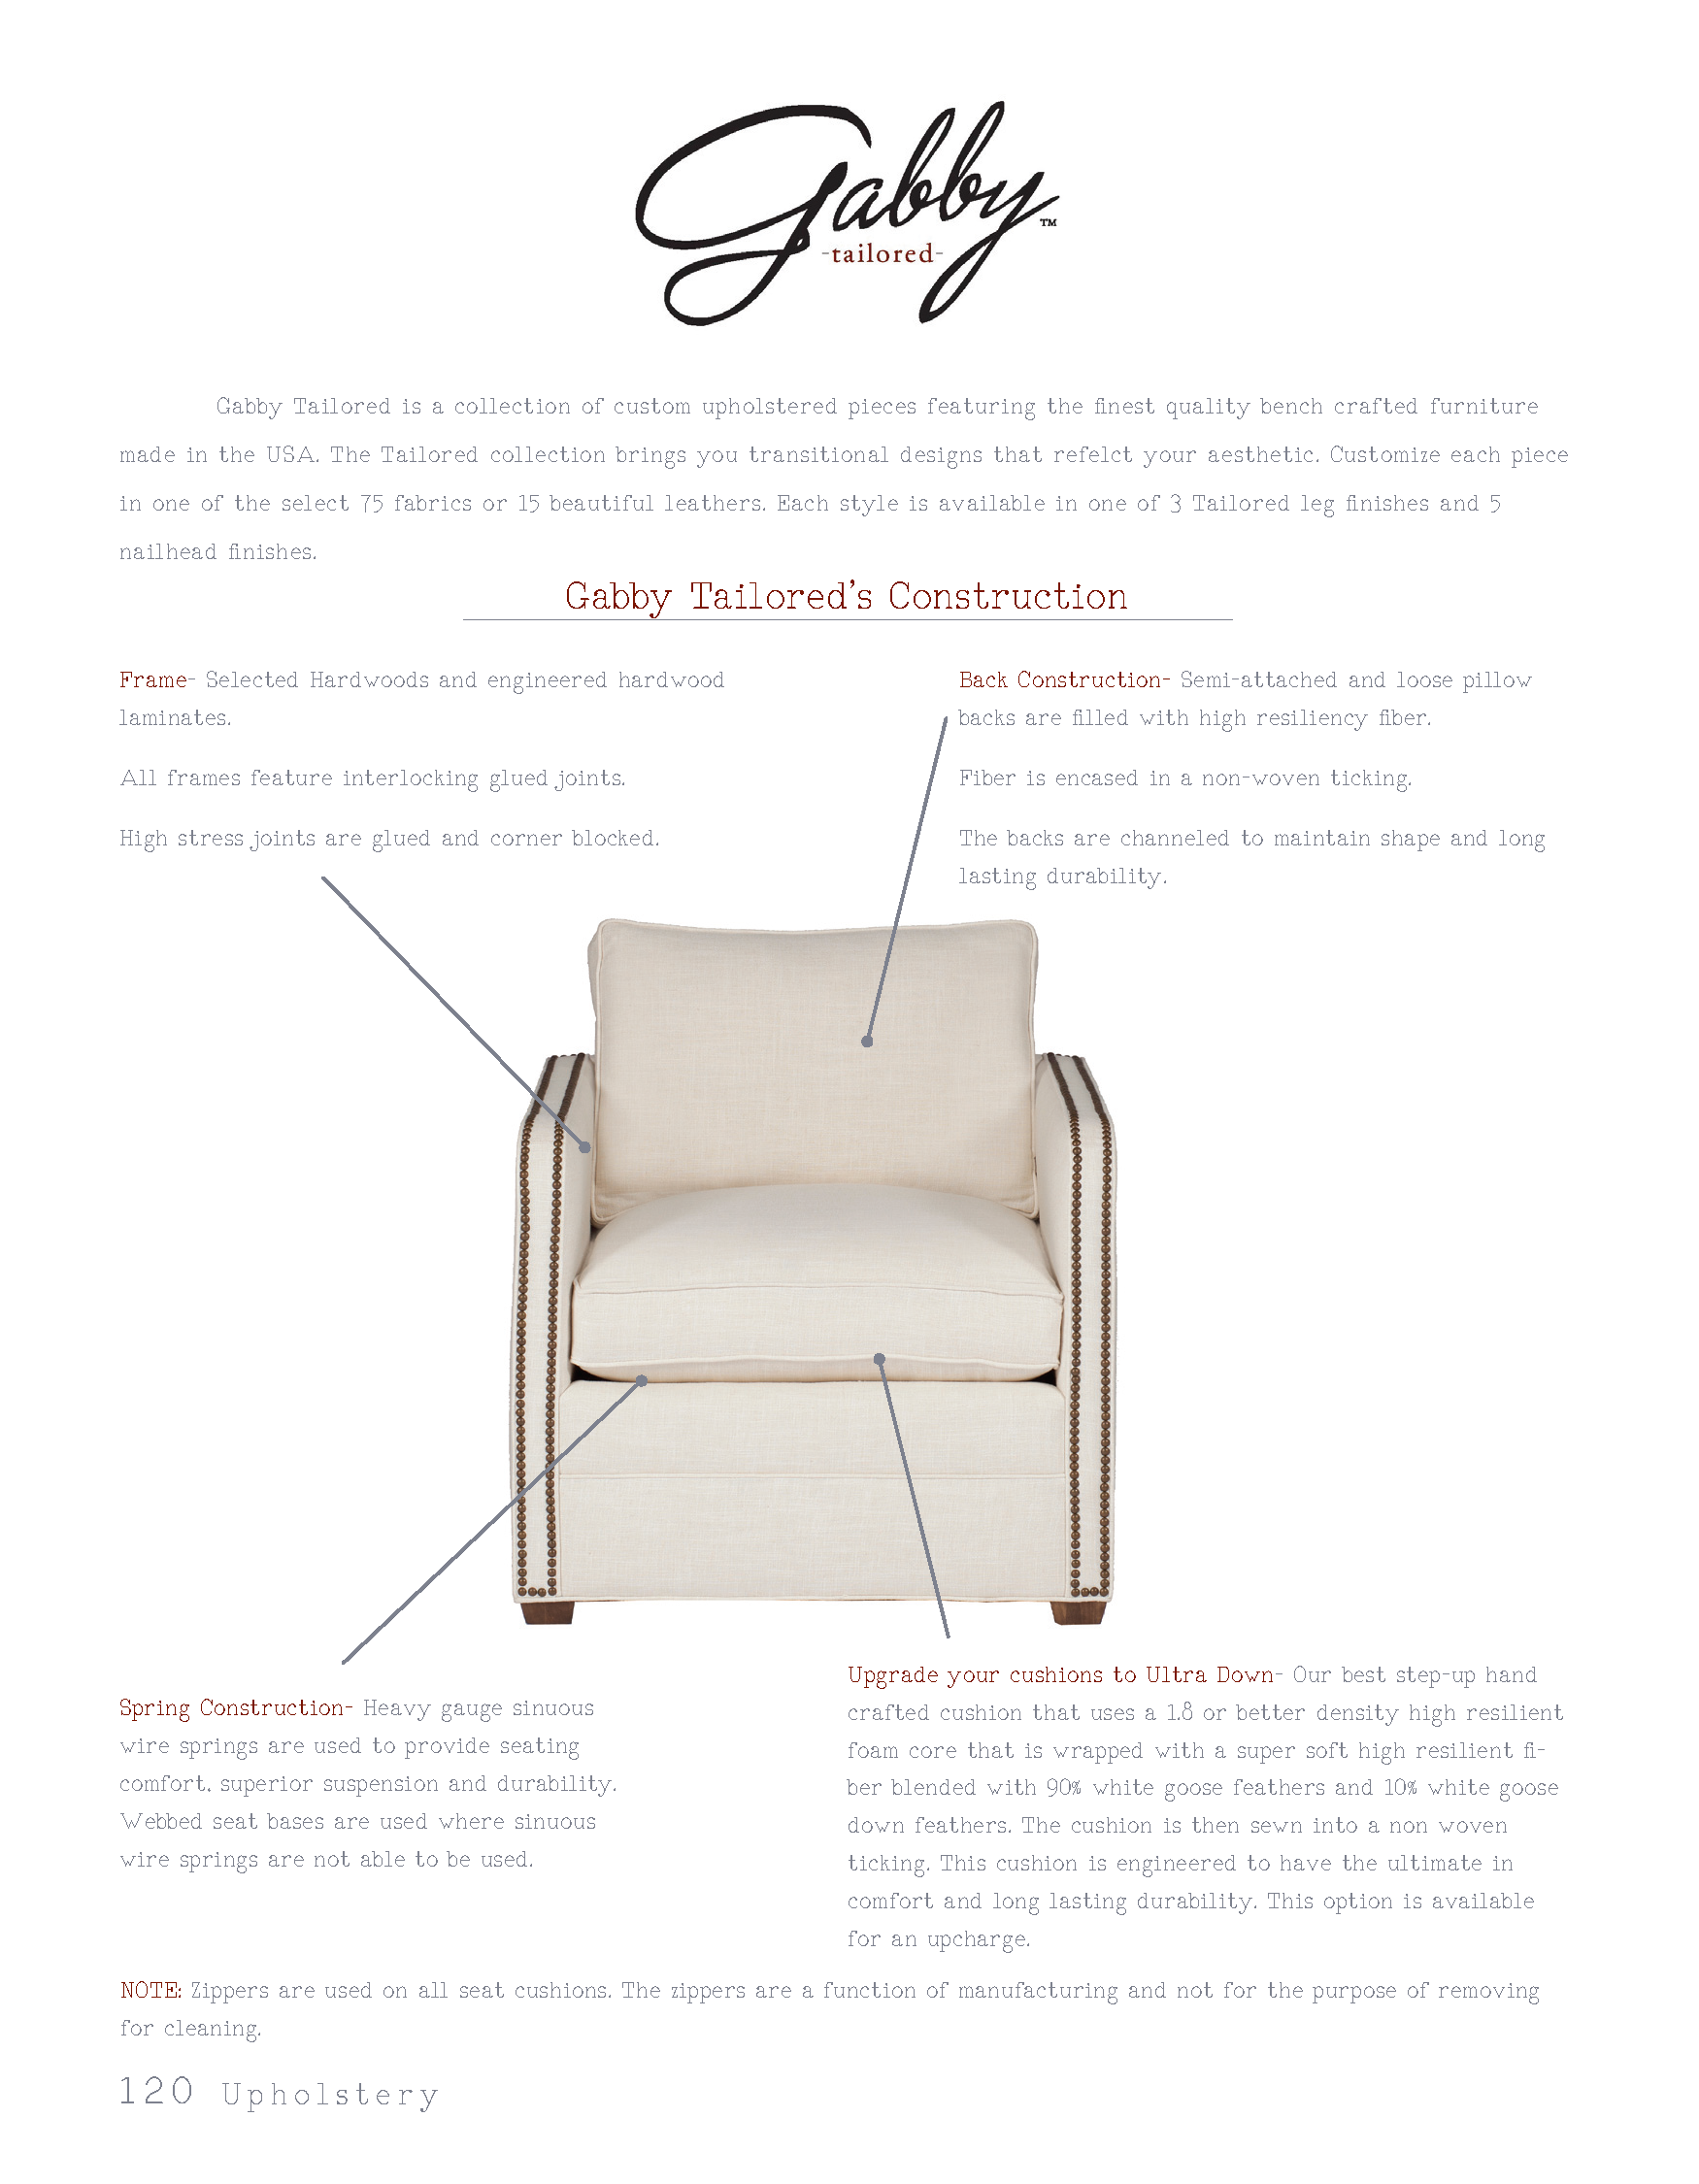 Gabby's Tailored Collection Of Custom Upholstered Furniture